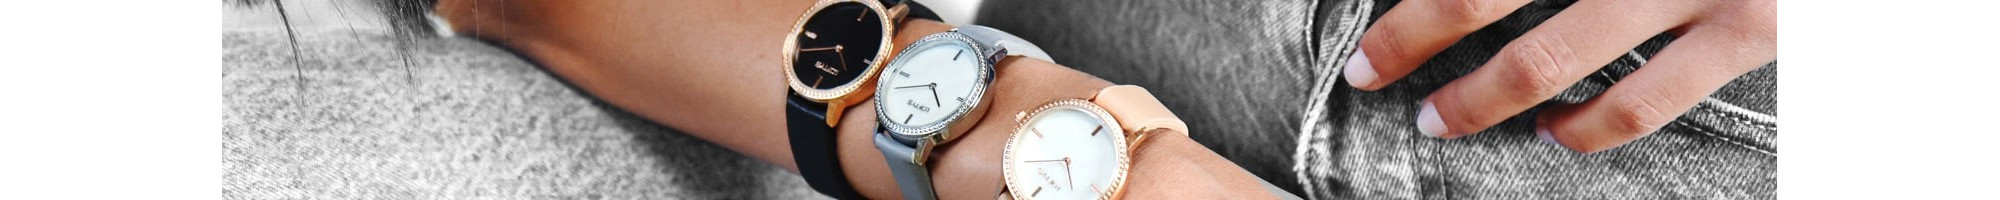 Women's Watches | Exclusive & unique designs - Now online at BIJOU BOX